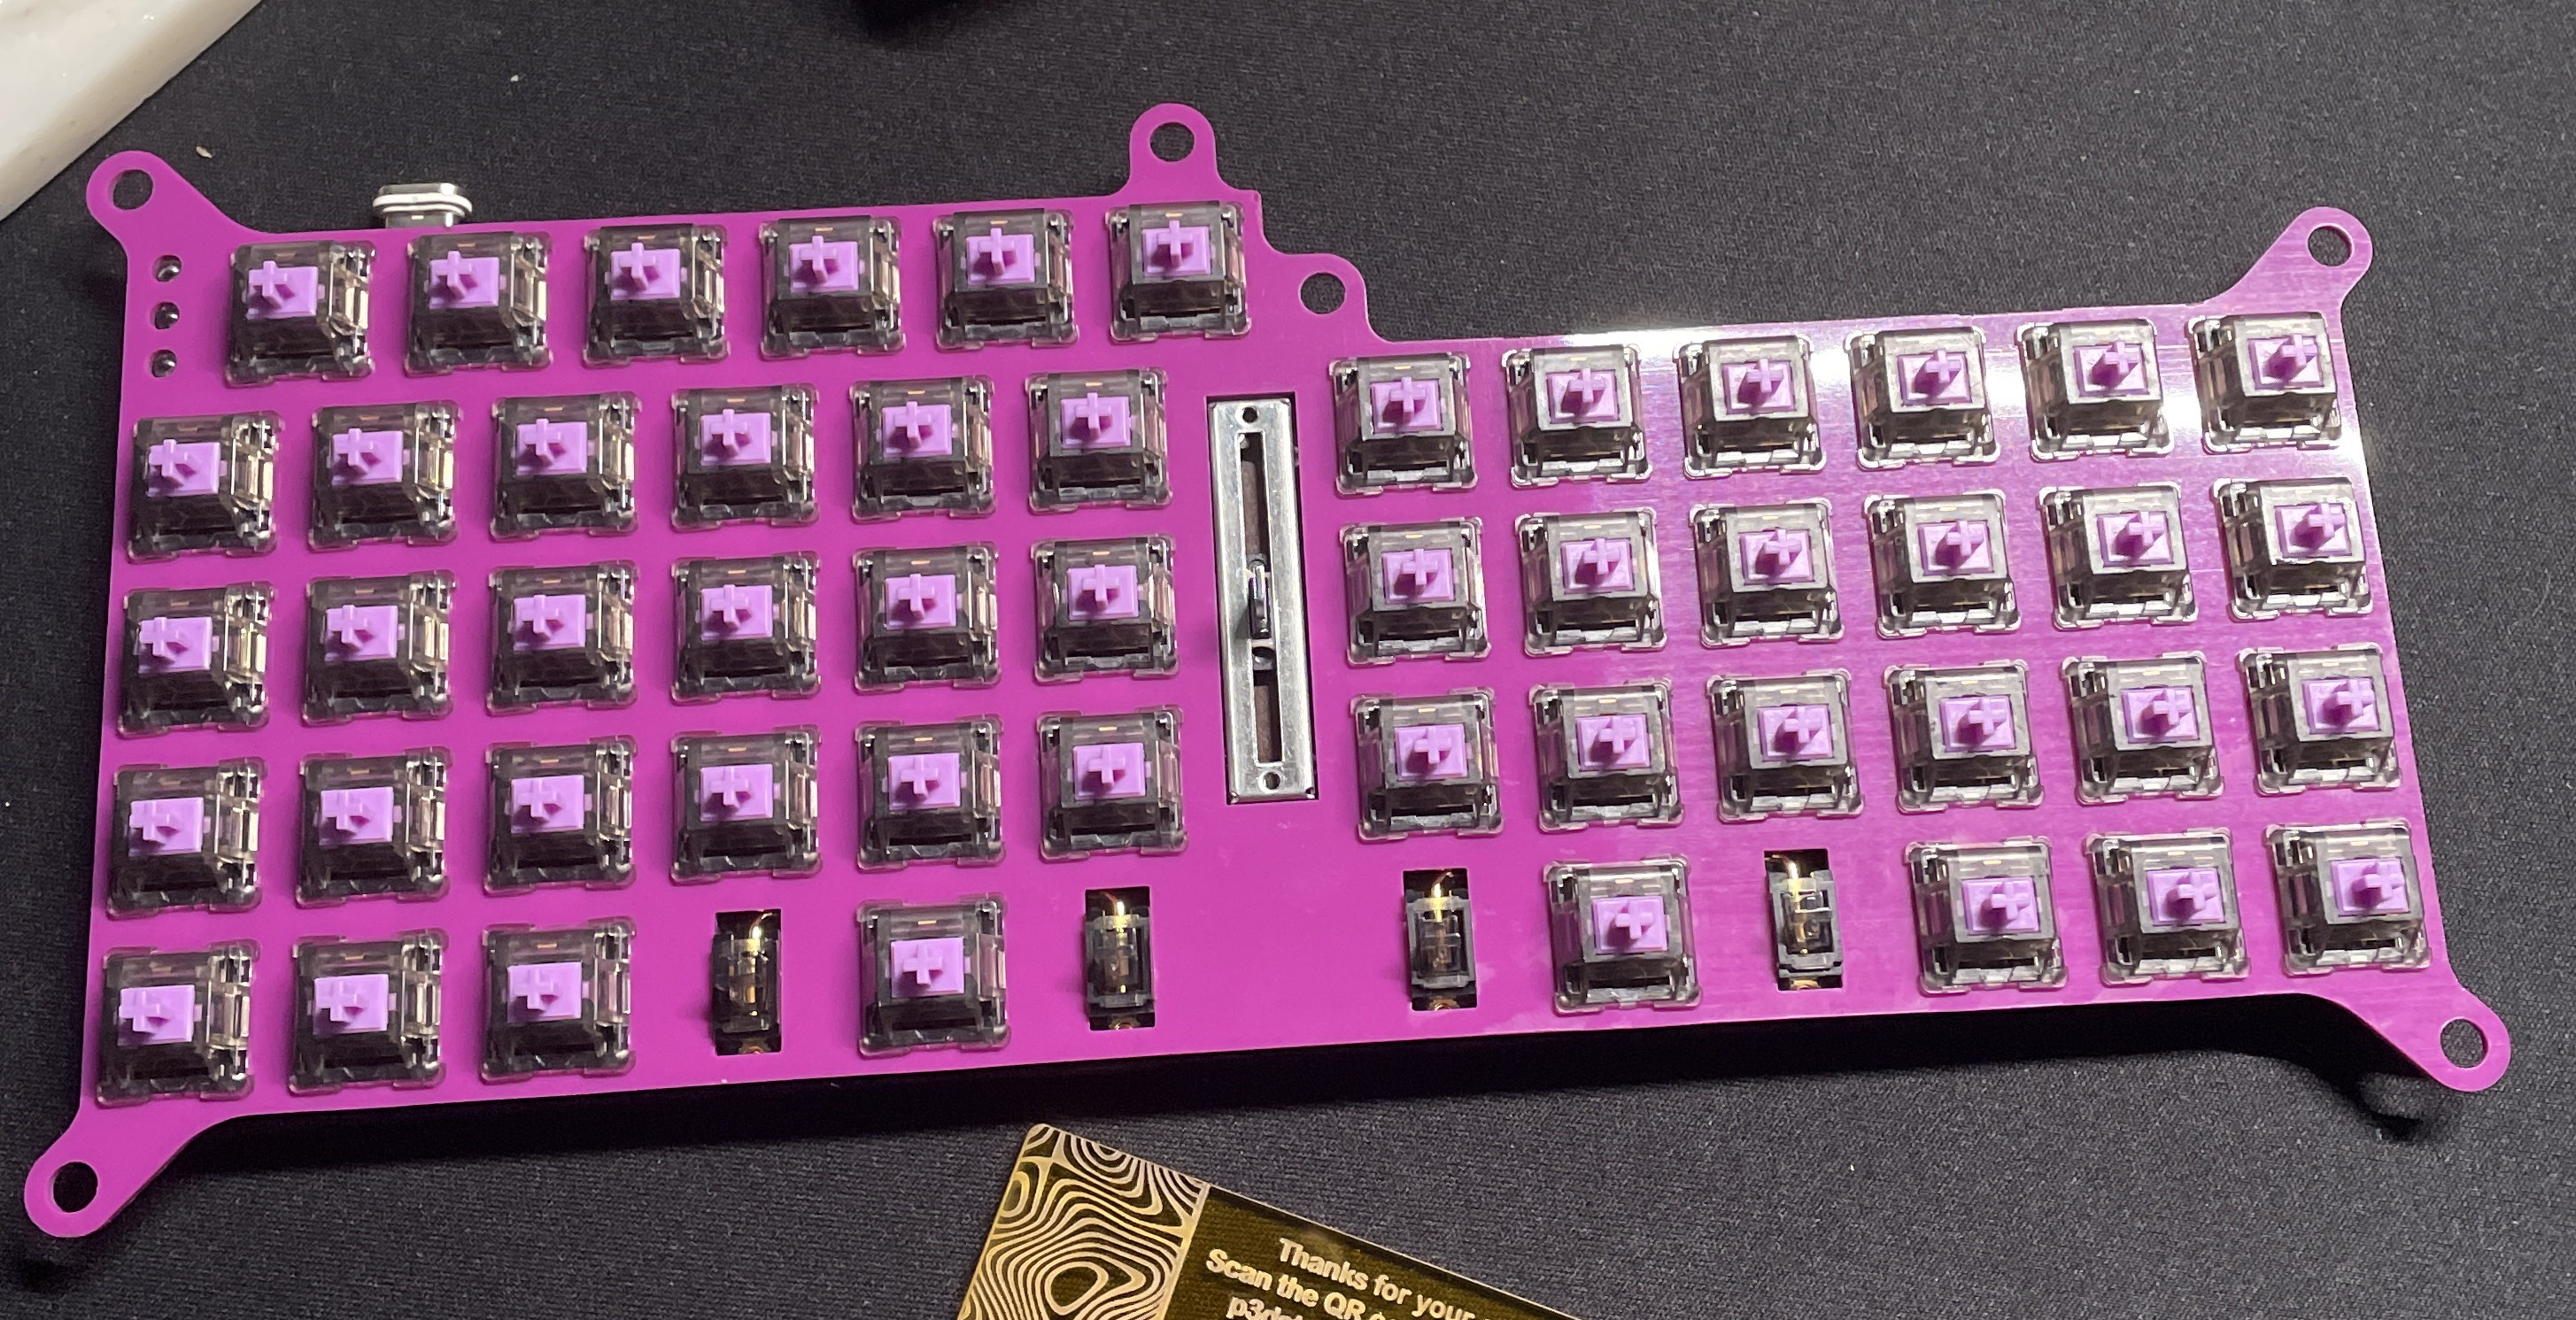 Purple POM plate for P3DStore V4N4G0N case showing the unique mounting hole layout